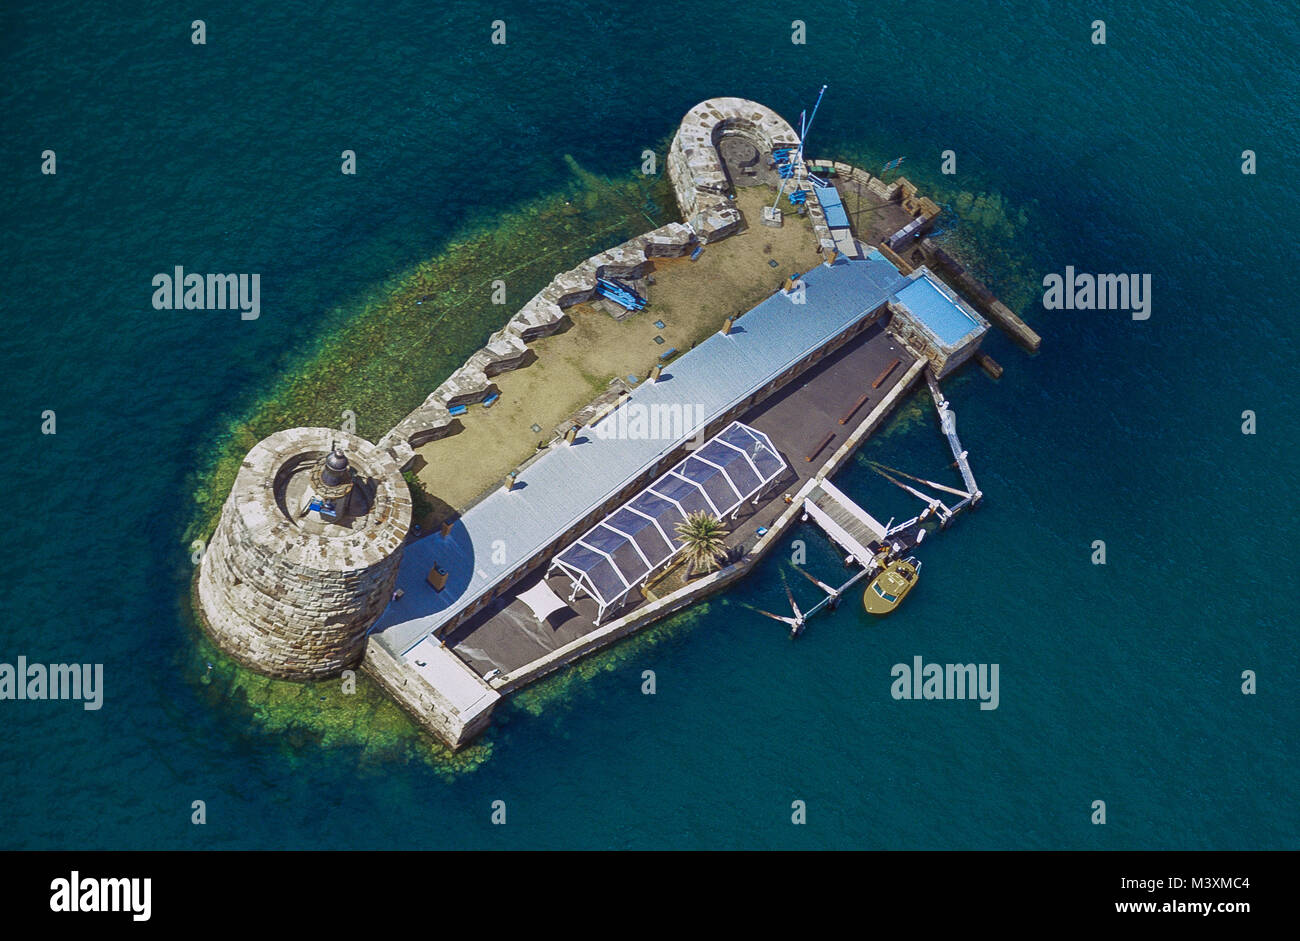 Aerial view of Fort Denison, the former convict site on Sydney Harbour, 1km east of Sydney Opera House. Formerly - Stock Image